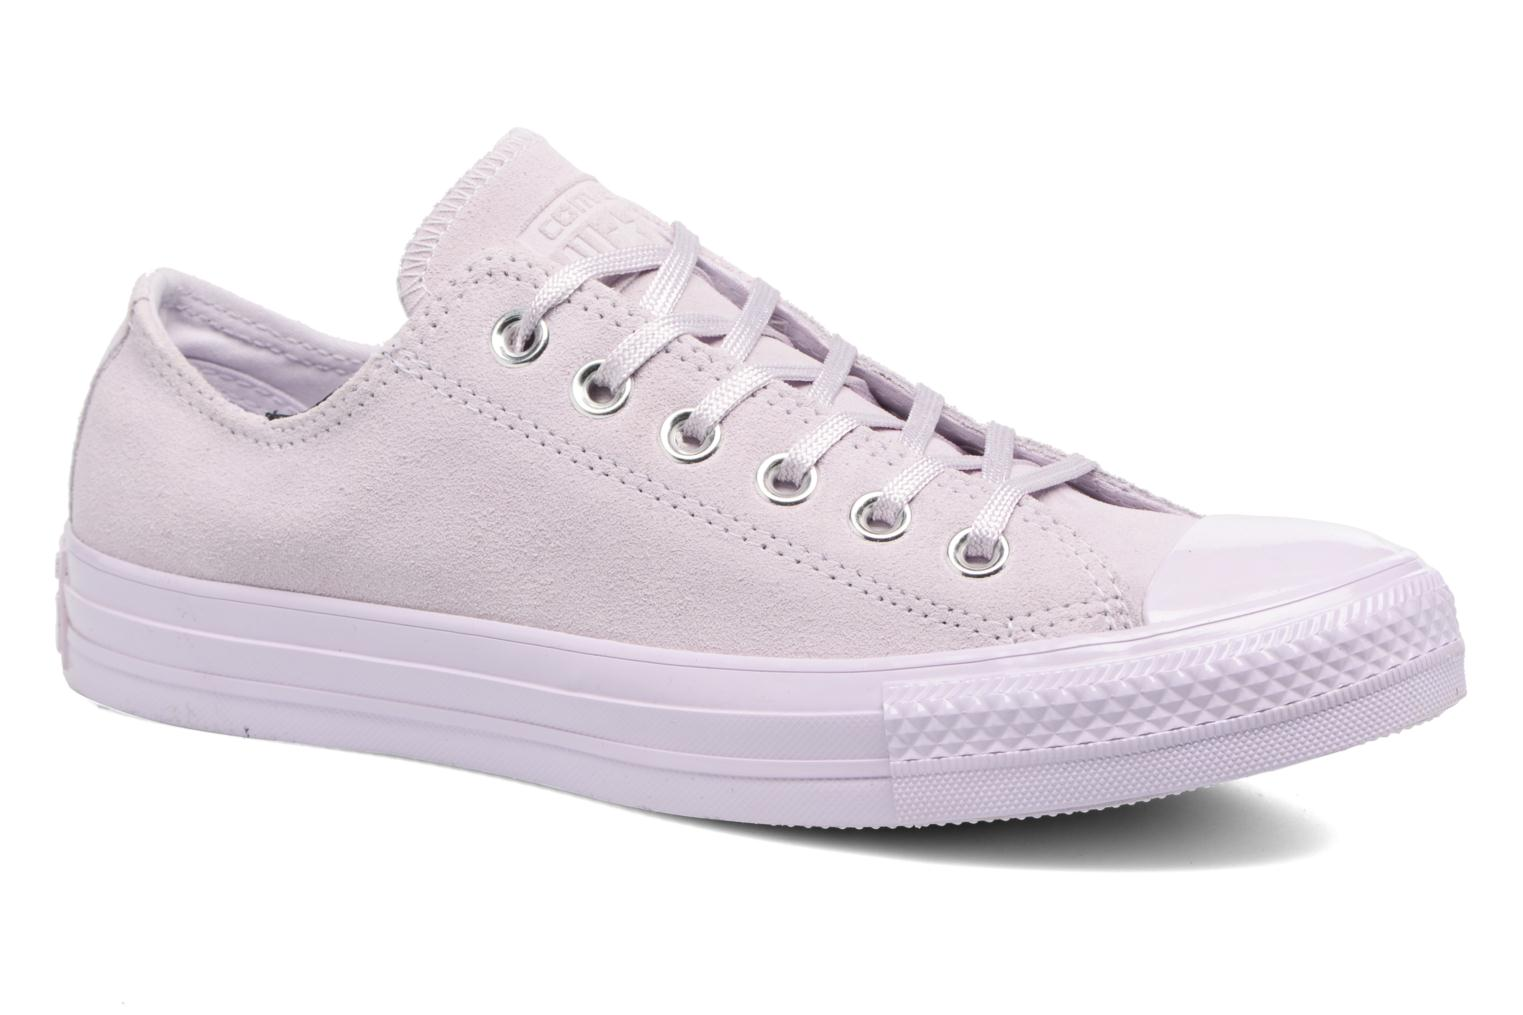 Marques Chaussure femme Converse femme Chuck Taylor All Star Mono Plush Suede Ox Barely Fuchsia/Barely Fuchsia/Barely Fuchsia